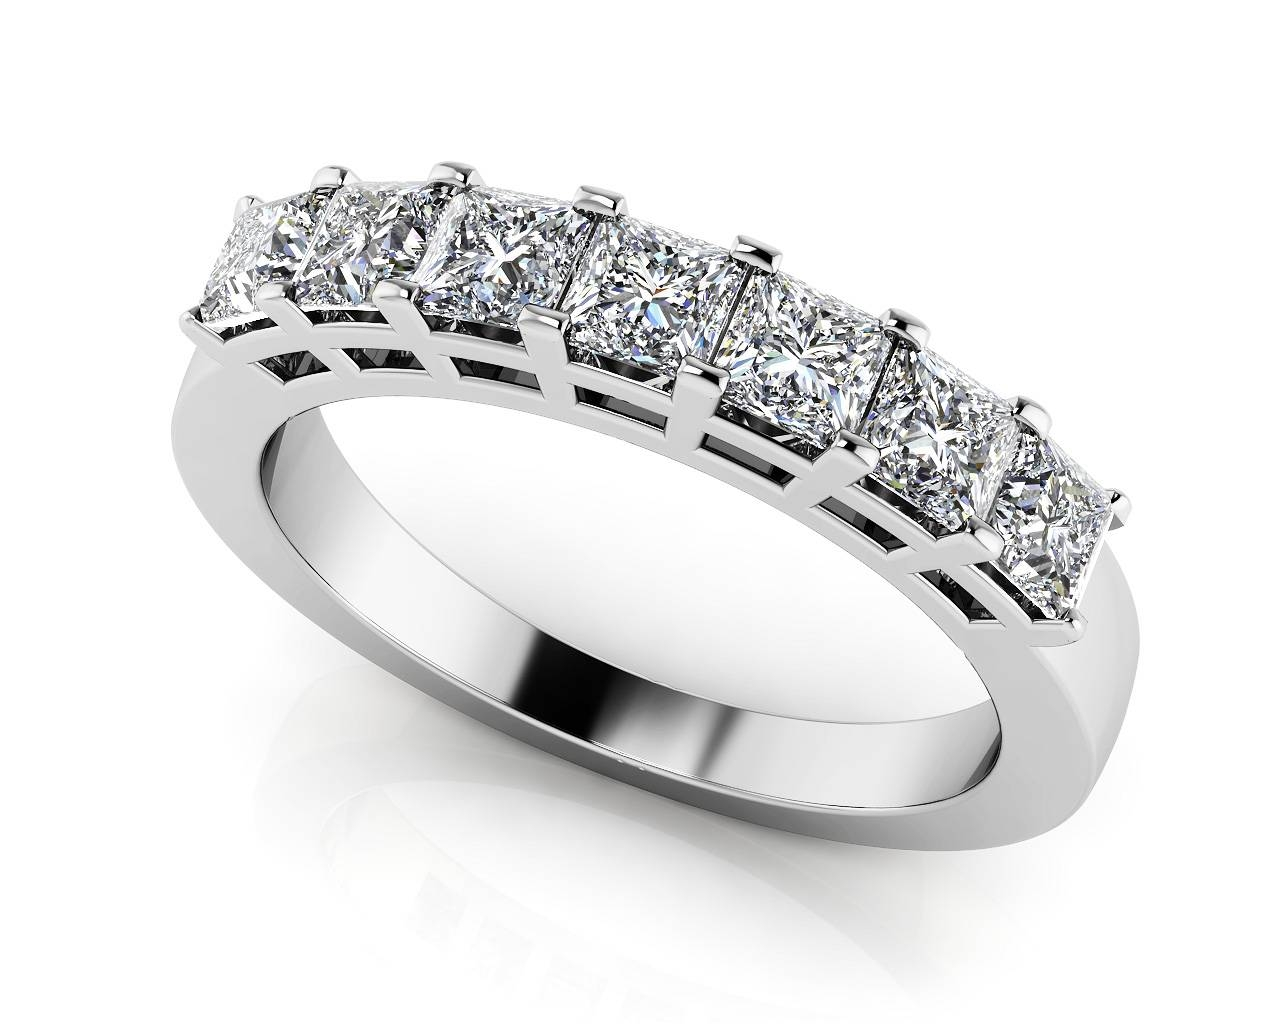 Design Your Own Diamond Anniversary Ring & Eternity Ring Intended For Latest Five Year Anniversary Rings (Gallery 1 of 25)